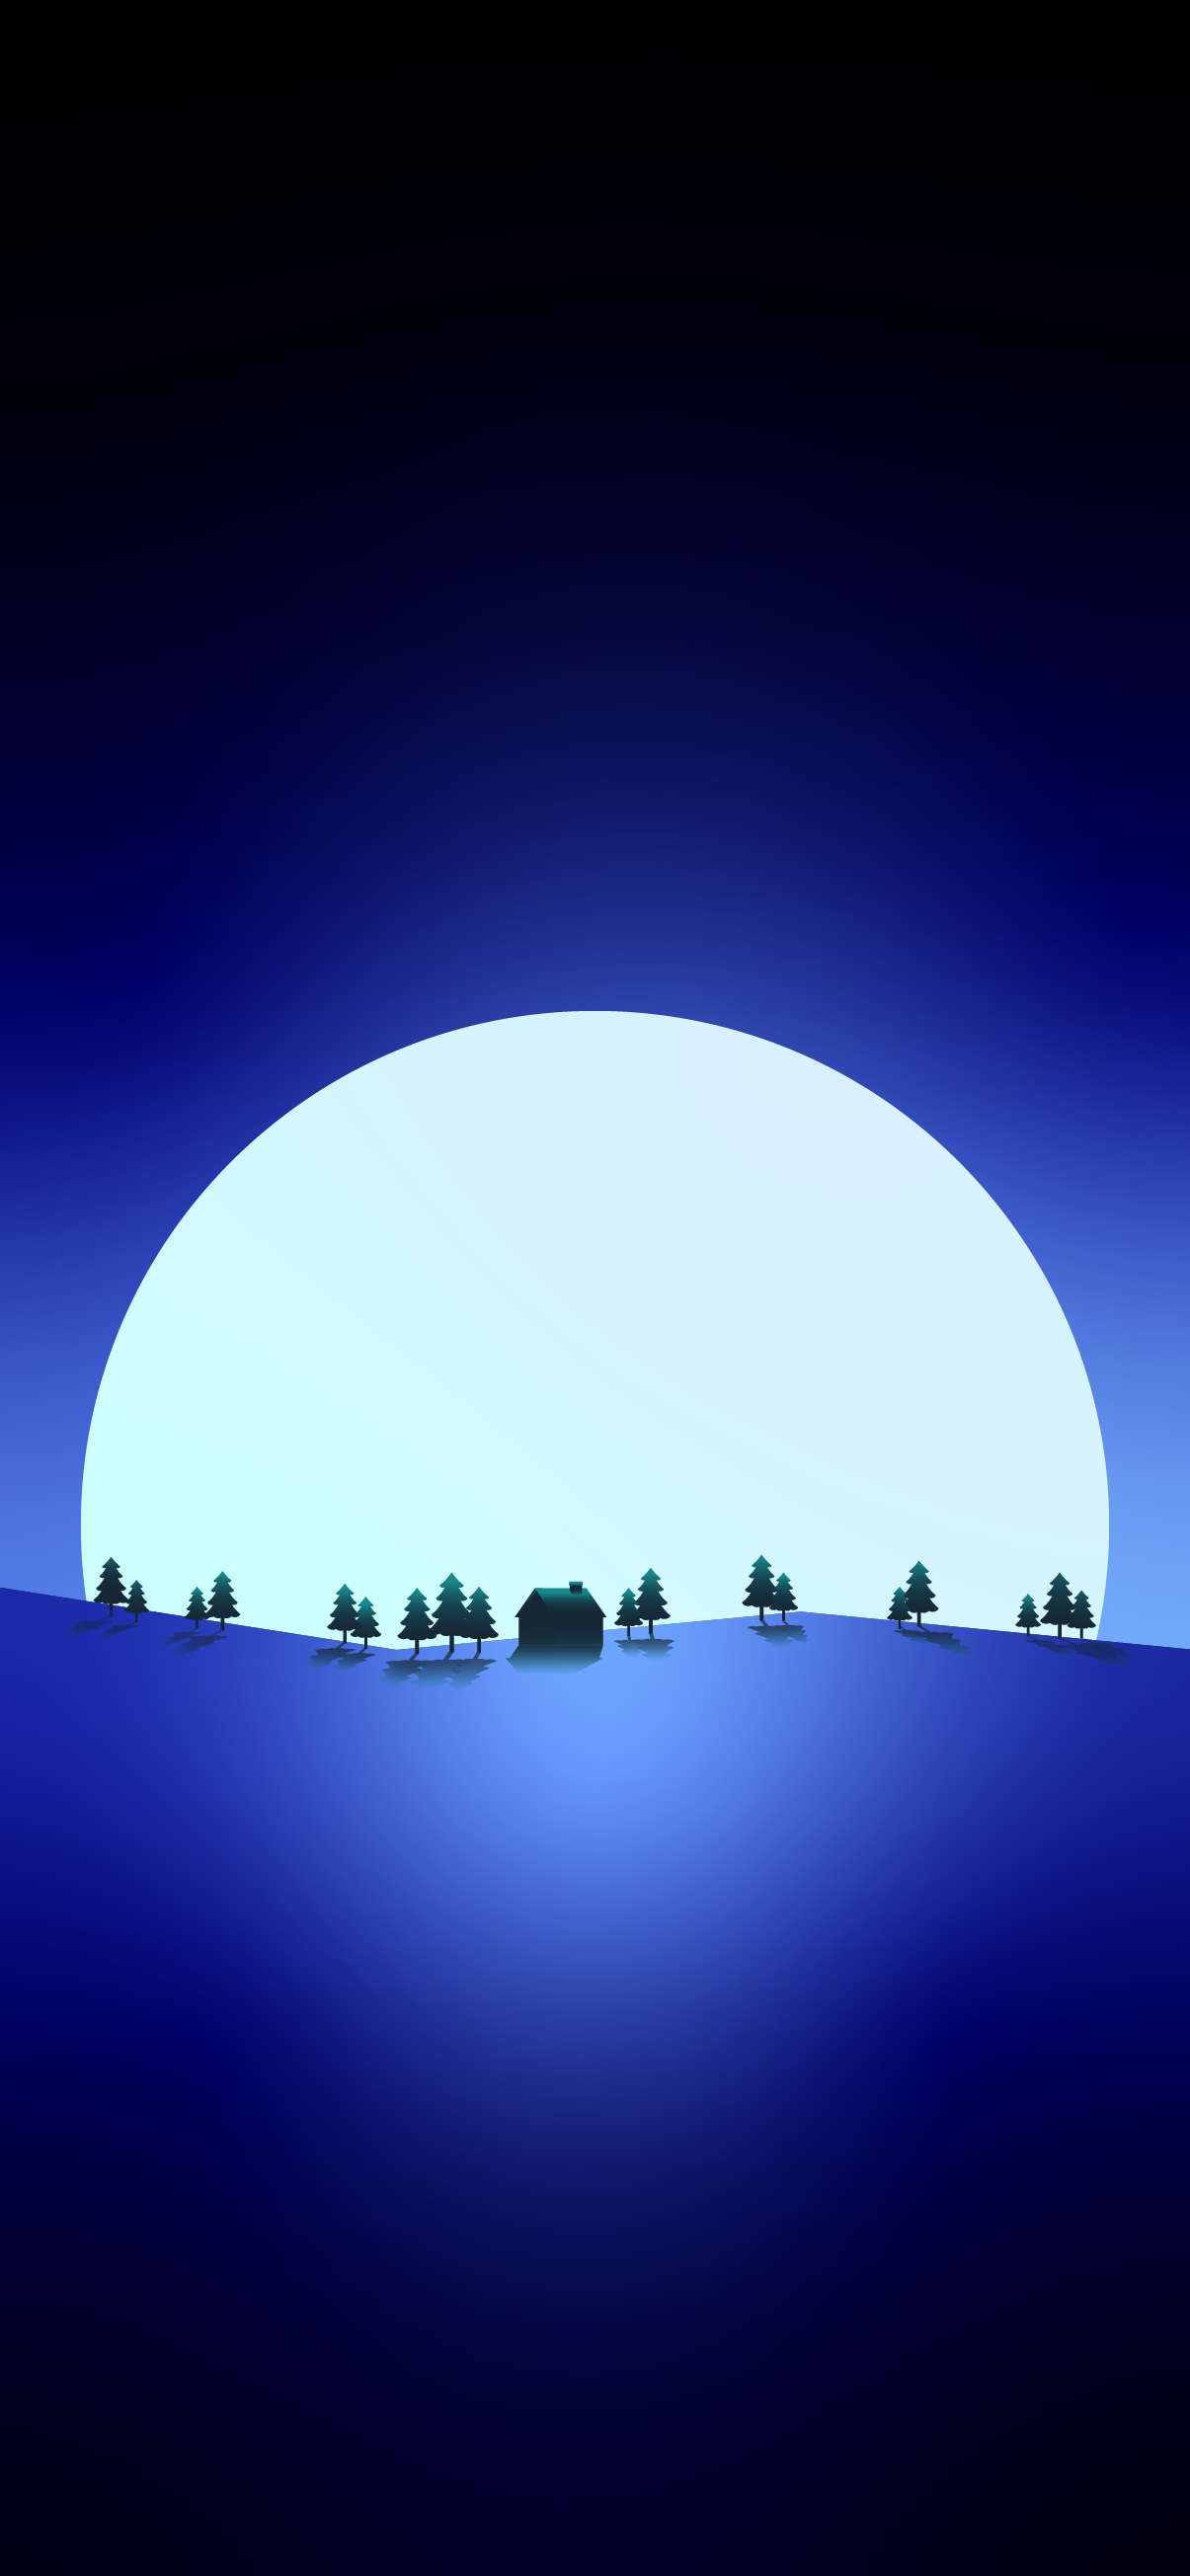 beautiful moon landscape iphone wallpaper 4k